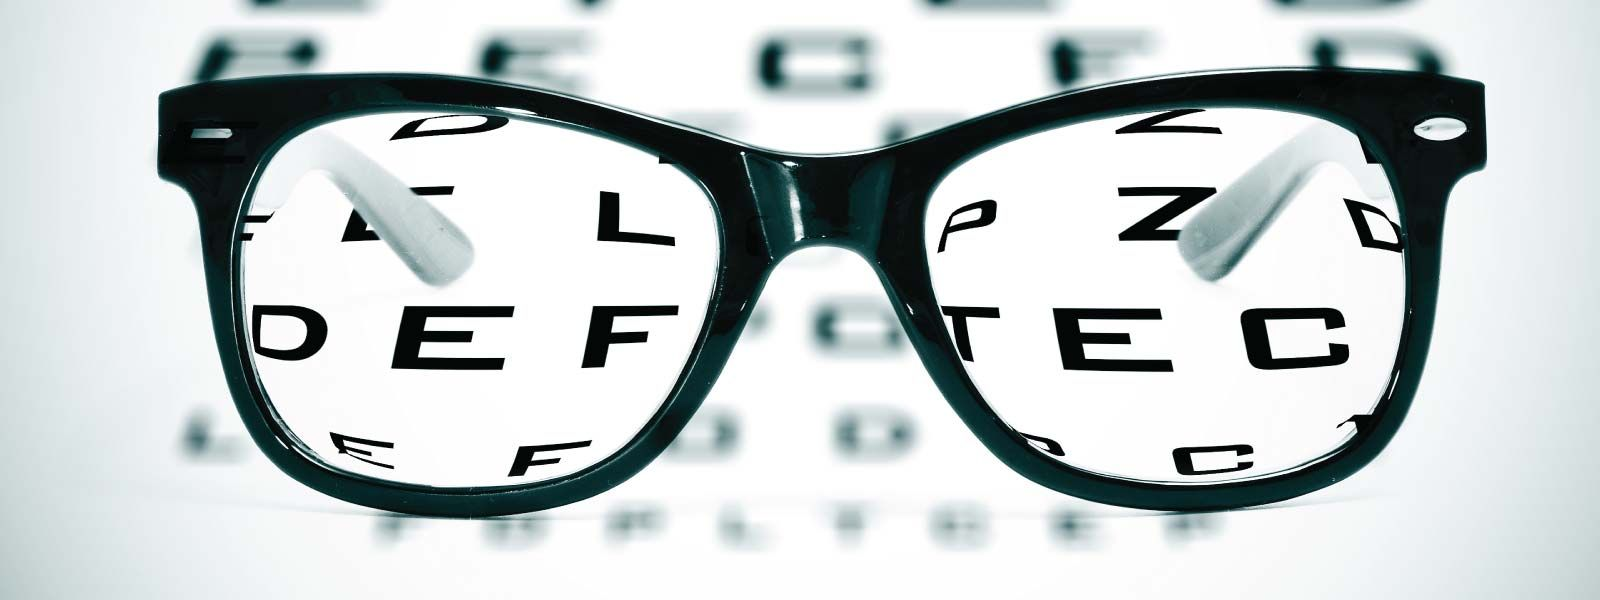 Here are some tips for preparing for your #EyeExam! http://www.eyeglassguide.com/my-visit/visiting-your-eye-care-professional.aspx